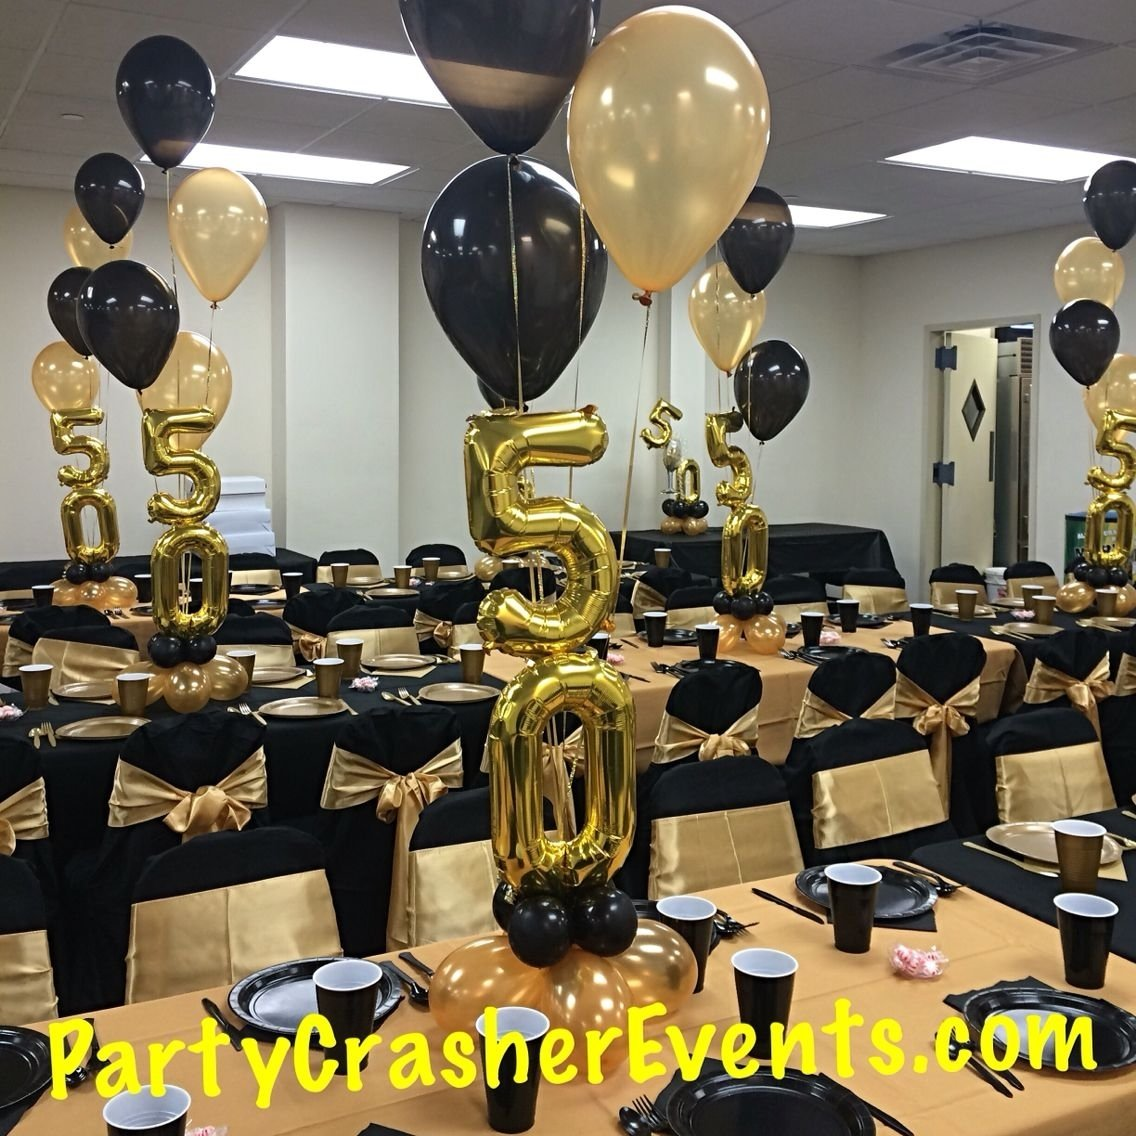 10 Pretty Turning 50 Birthday Party Ideas pinpeter lewis on 30 year old birthday party ideas themes 6 2020